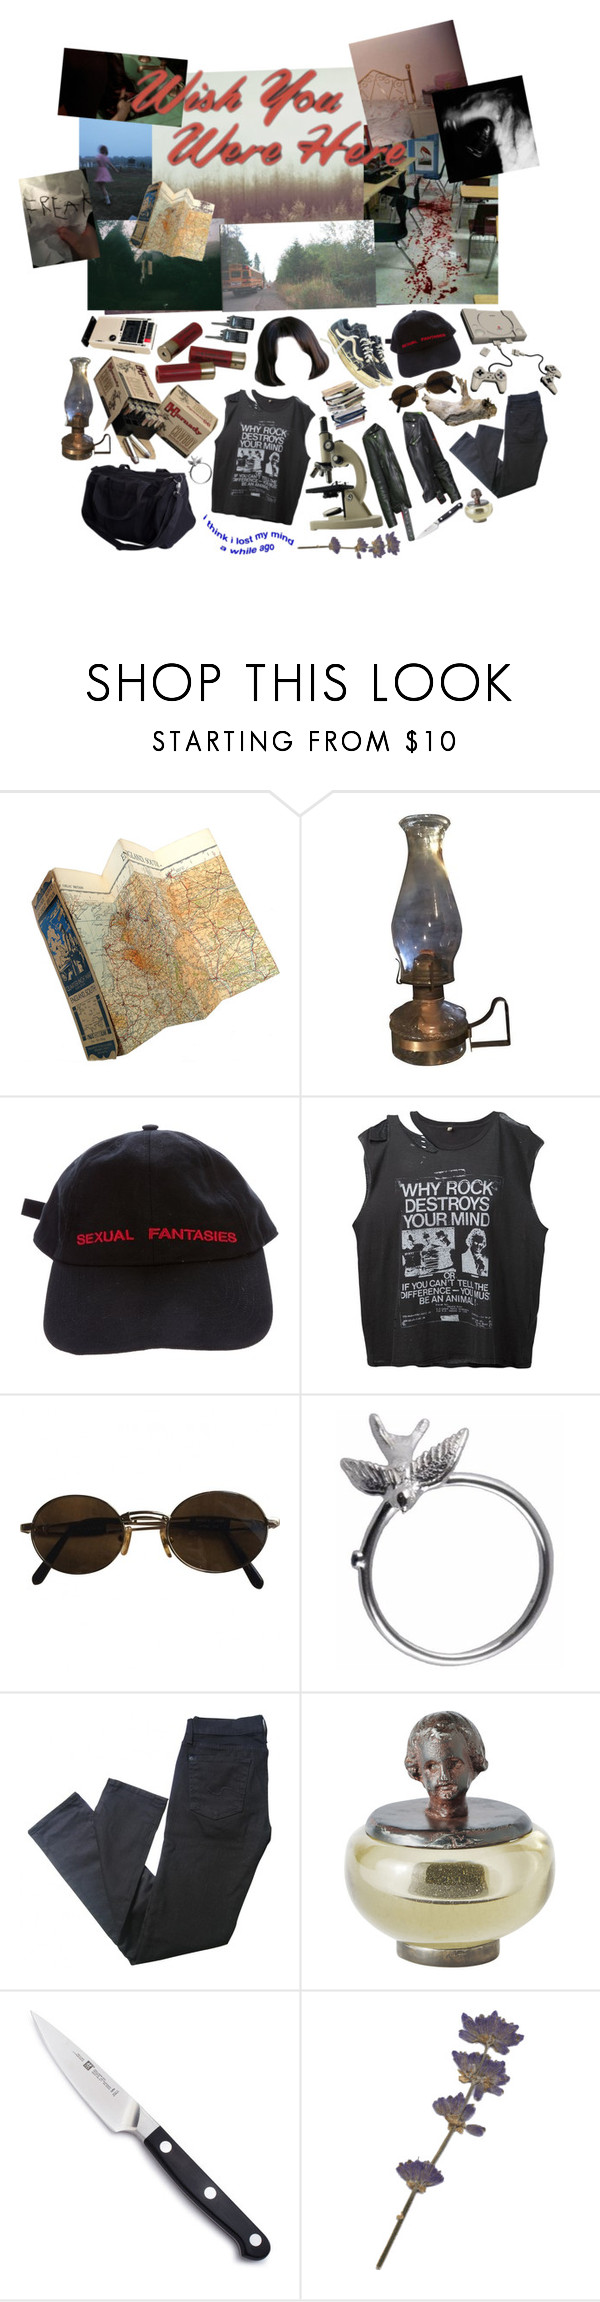 """""""Not one step closer"""" by anna-pensky ❤ liked on Polyvore featuring WALL, Vans, Vetements, R13, Moschino, Roz Buehrlen, 7 For All Mankind, Jan Barboglio, Zwilling J.A. Henckels and men's fashion"""